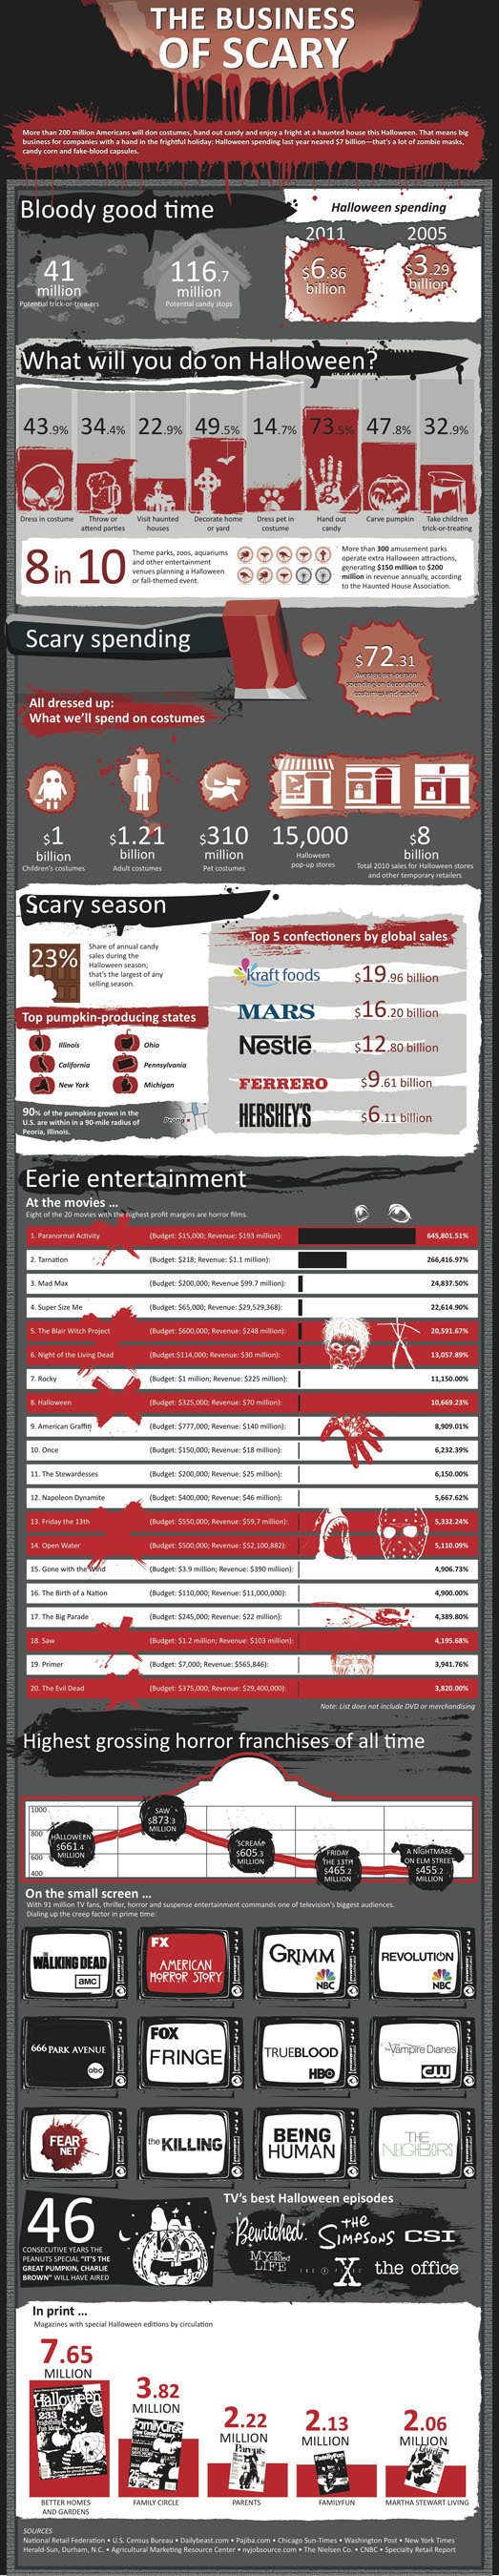 FEARnet Survey Discovers that the Business of Scary is a $7 Billion Industry.  (PRNewsFoto/FEARnet)